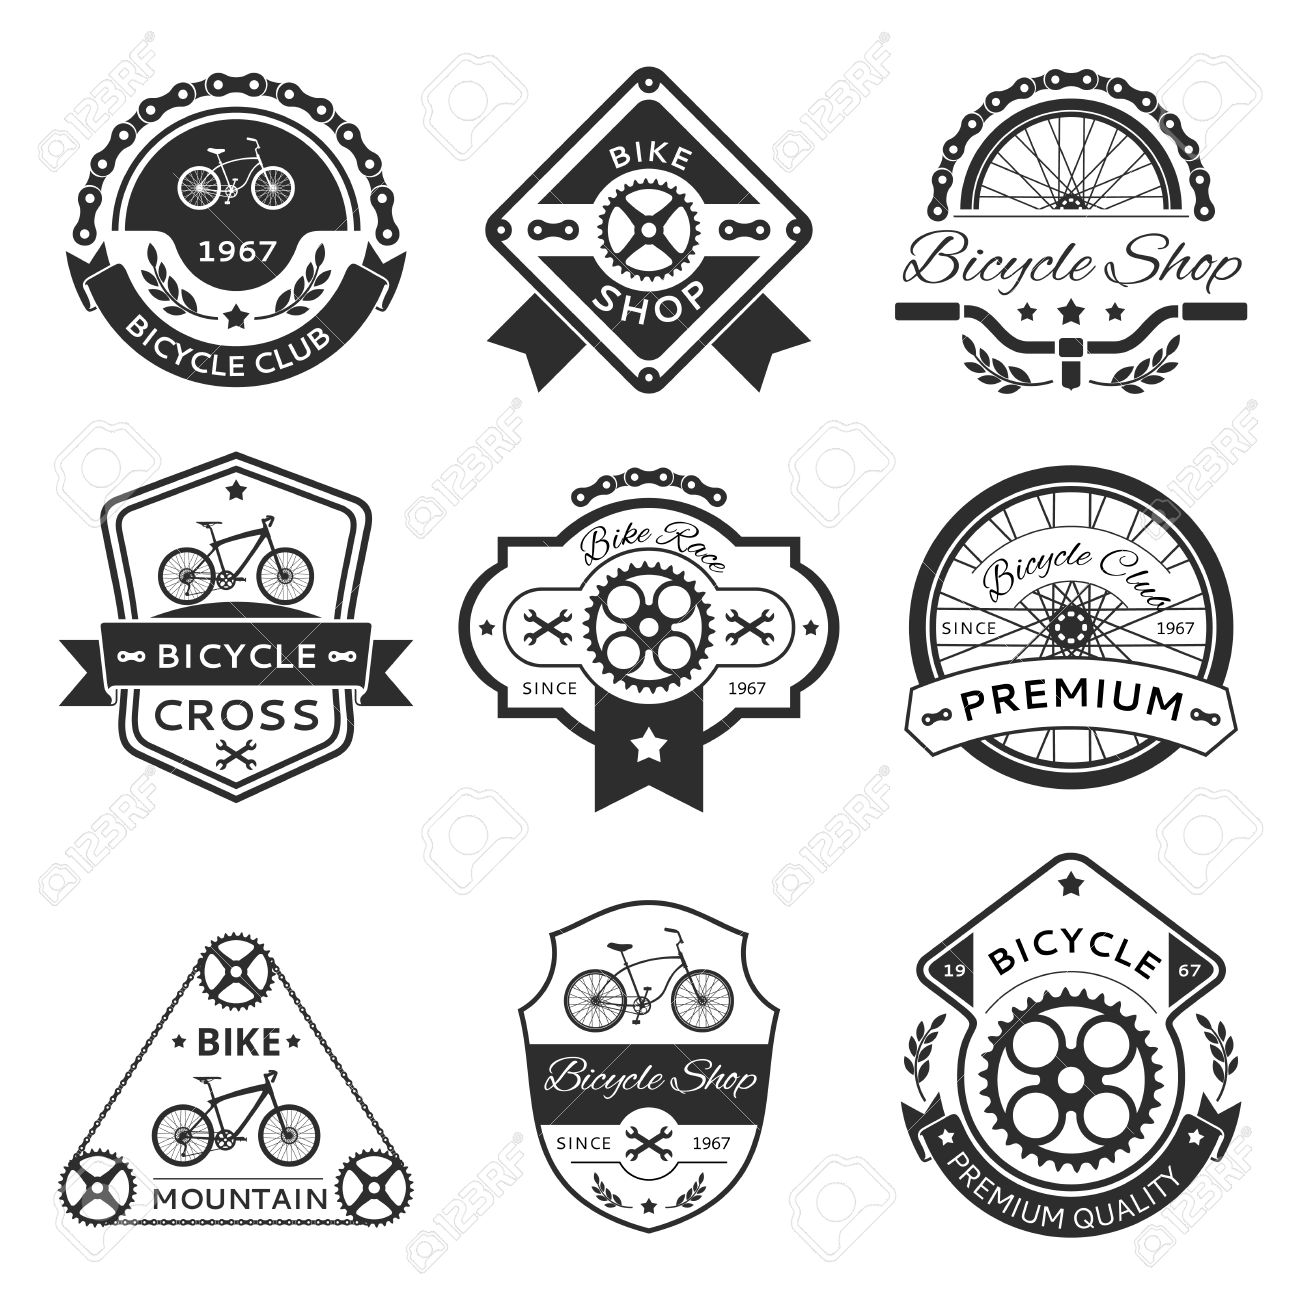 Design a bike sticker - Bicycle Labels Emblems Template Set Bike Design Sticker Or Stamp Vintage Element